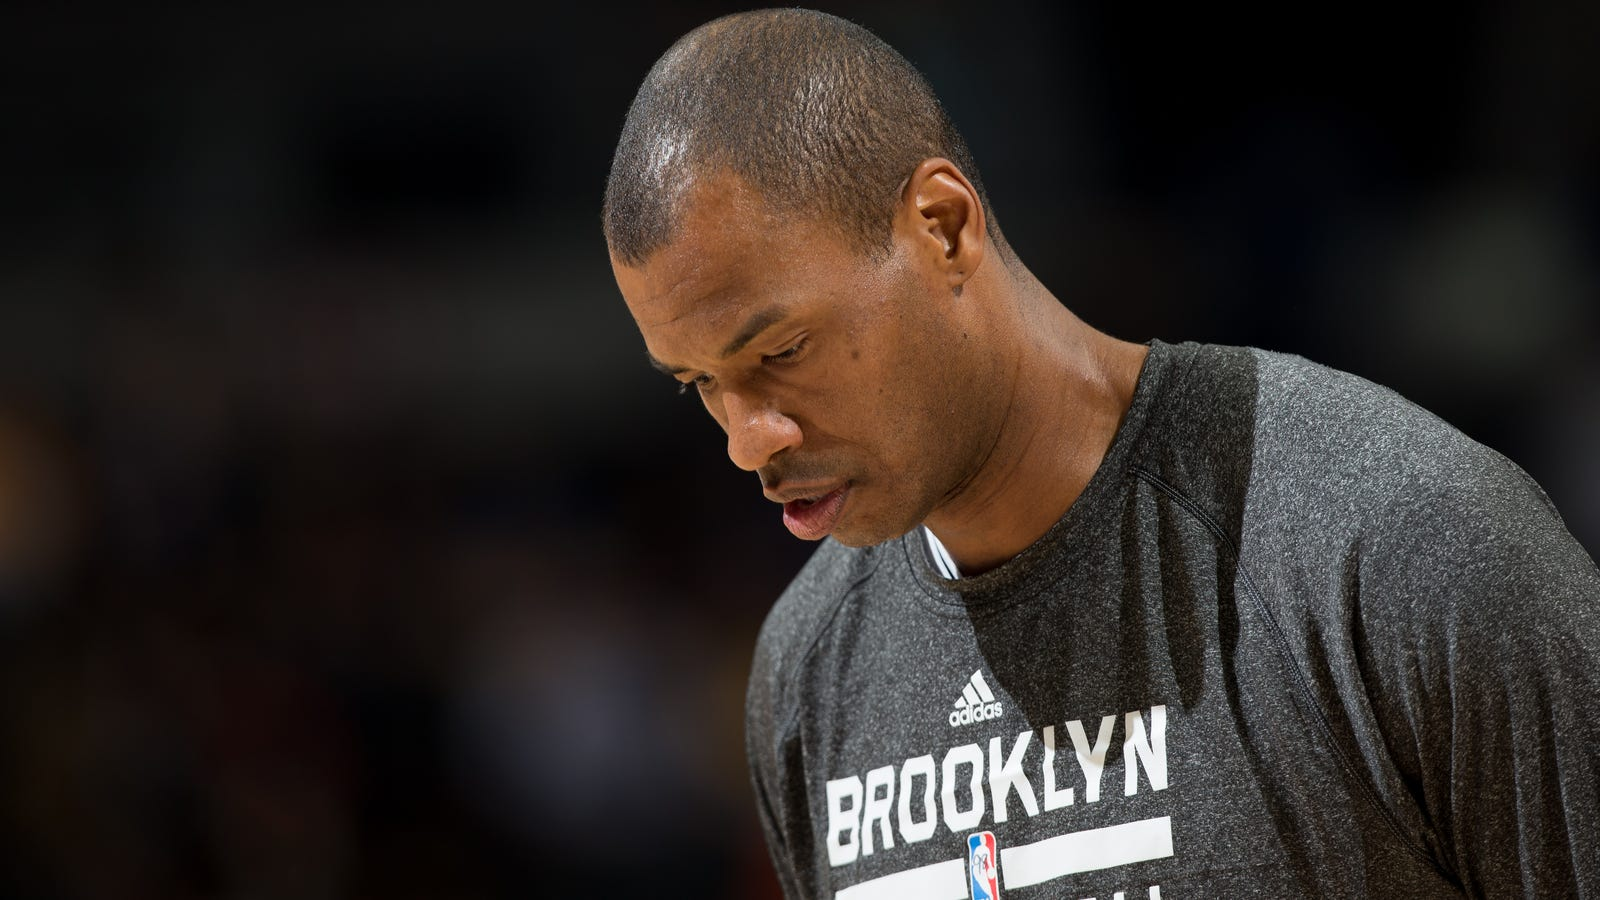 Jason Collins Becomes First Openly Gay NBA Player To Retire